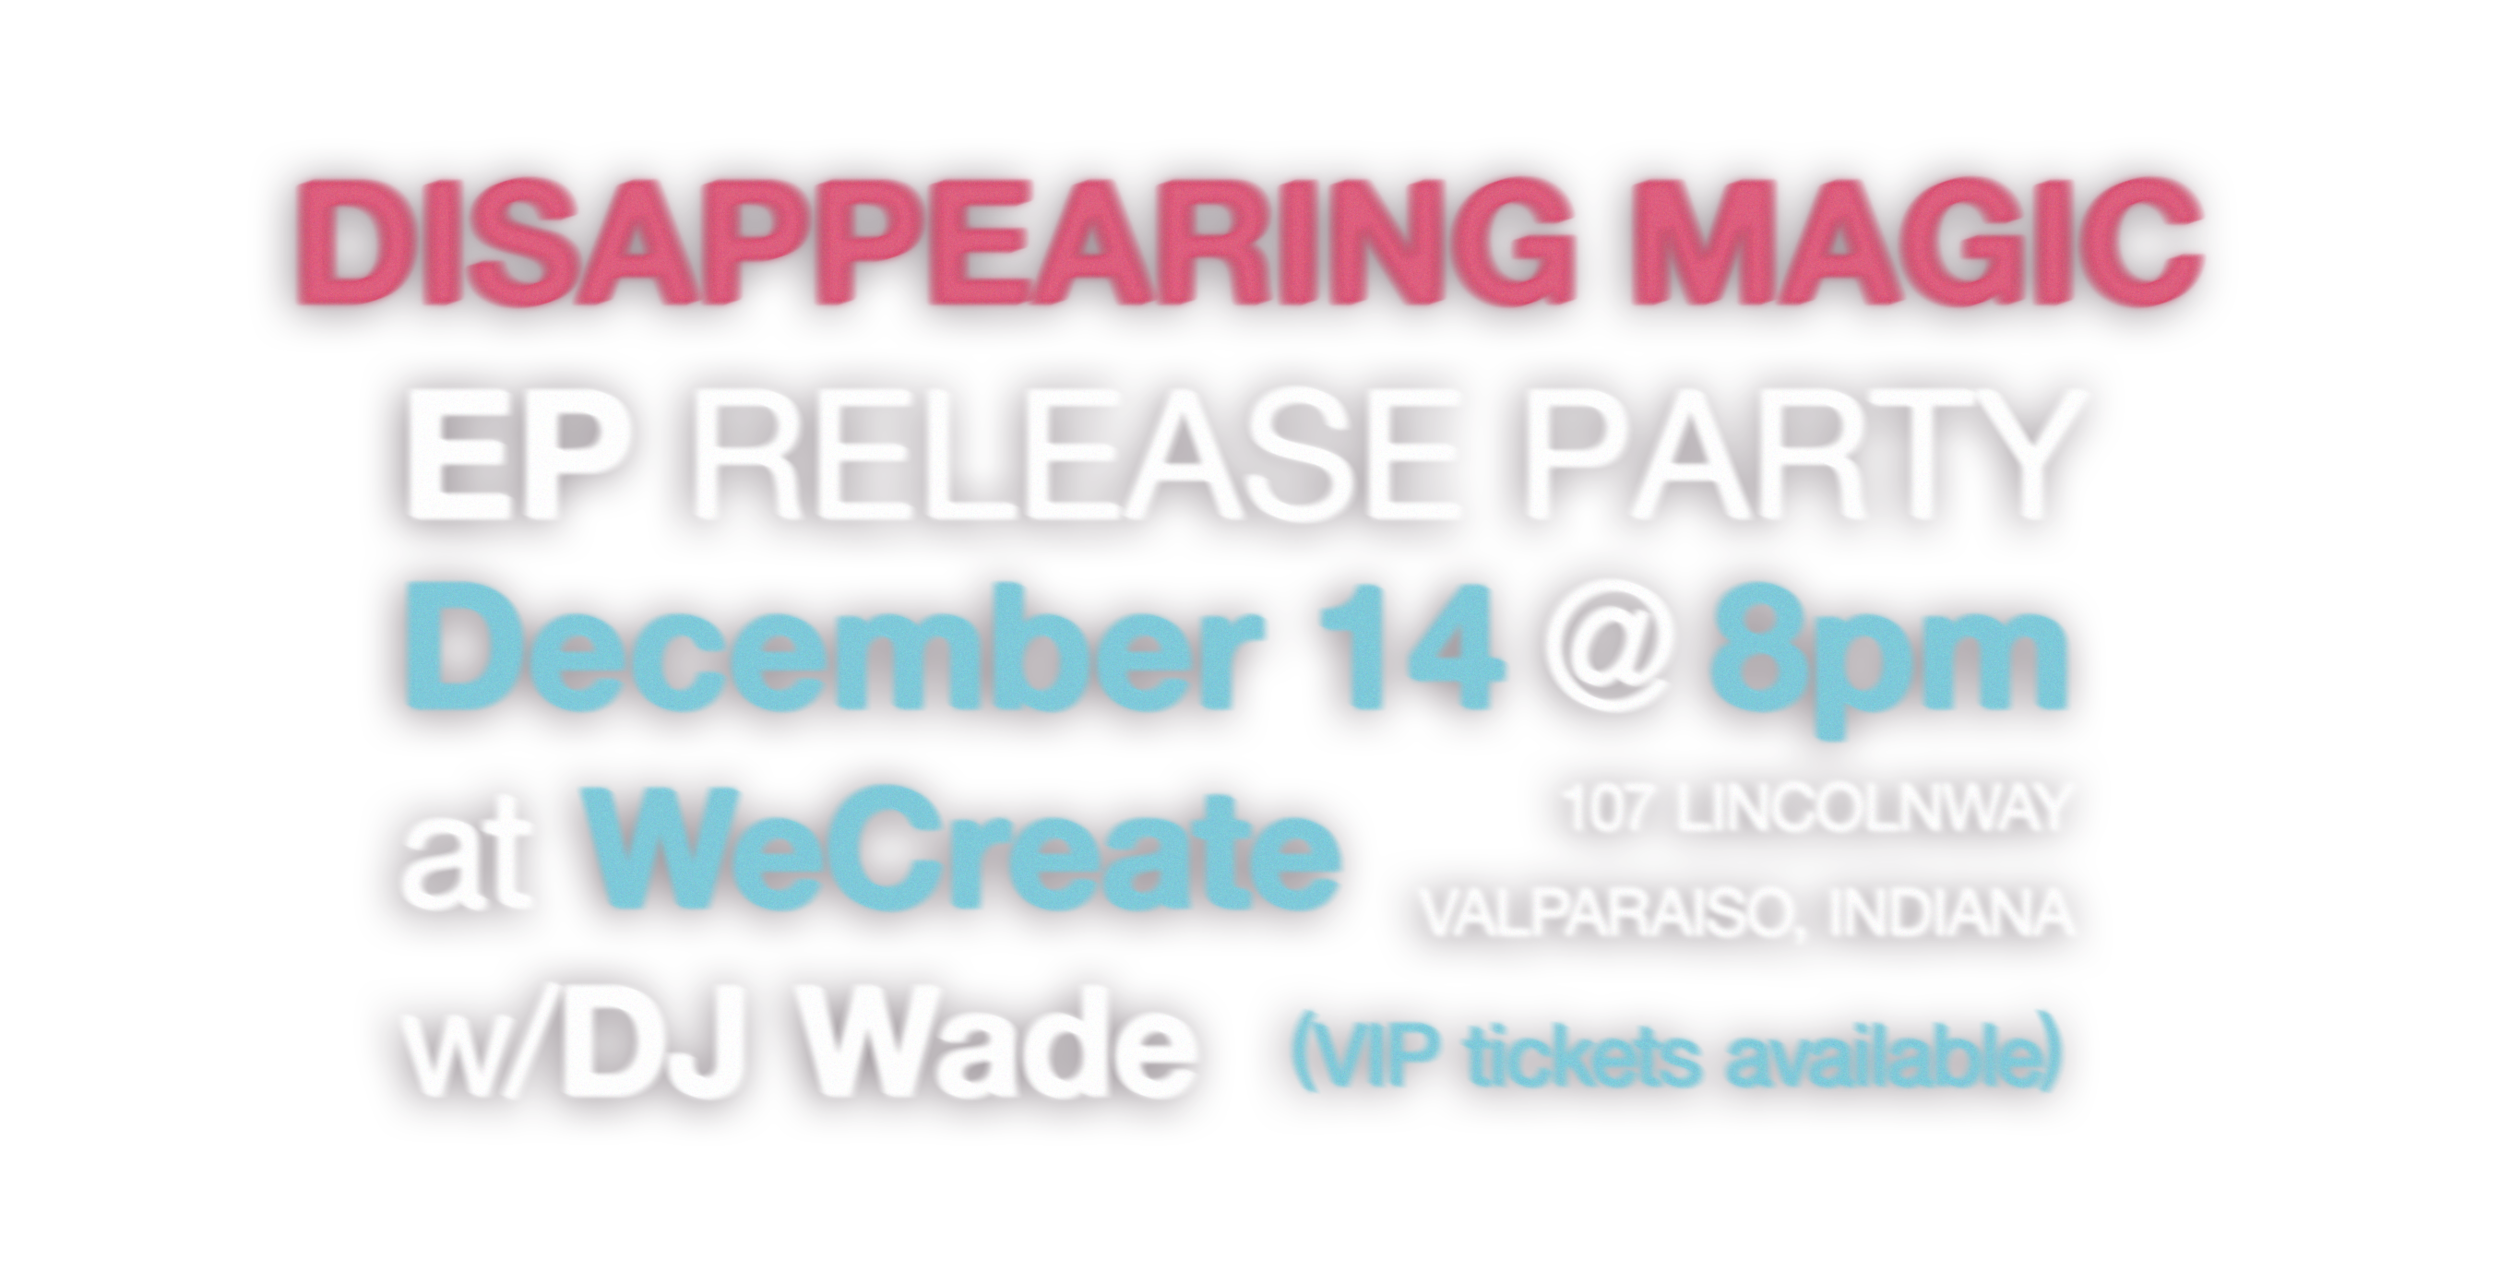 Disappearing Magic  EP Release Party  December 14th @ 8PM  at WeCreate    107 Lincolnway   Valparaiso, IN  w/DJ Wade  (VIP tickets available)